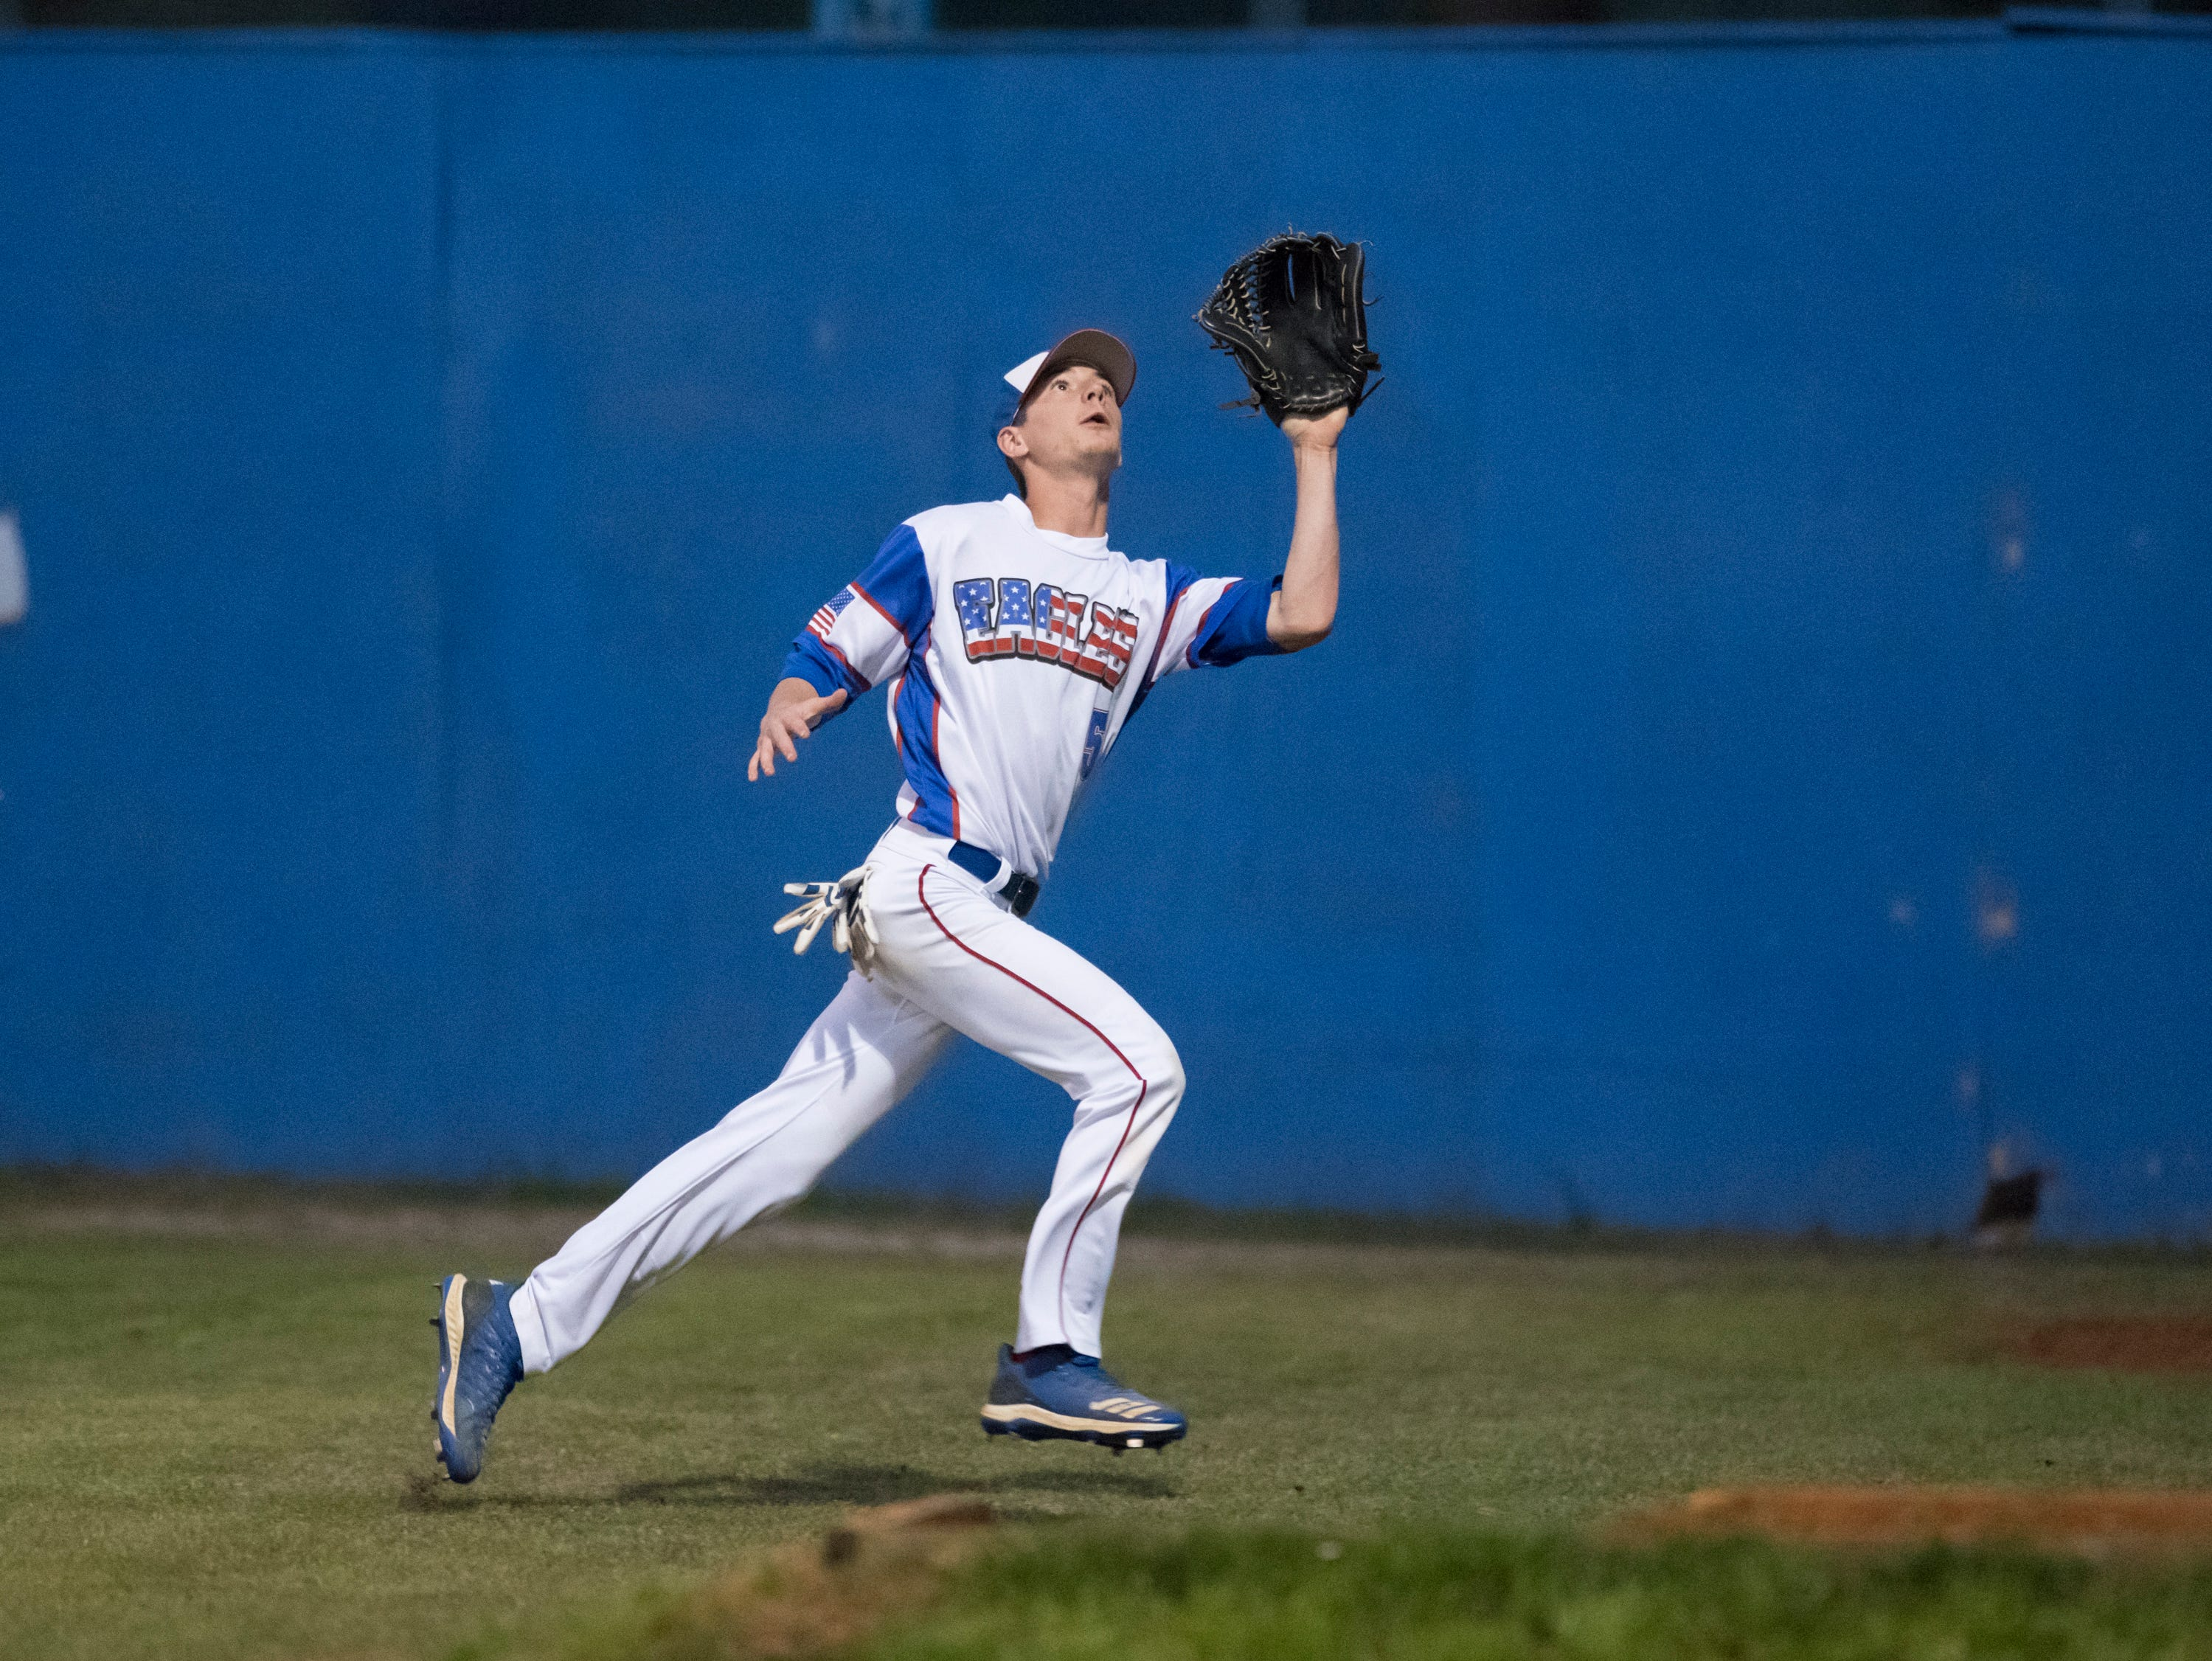 Right fielder Chase Gullatt (5) makes a running catch before running into the fence during the Christian Educational Consortium vs Pine Forest baseball game at Pine Forest High School in Pensacola on Wednesday, April 3, 2019.